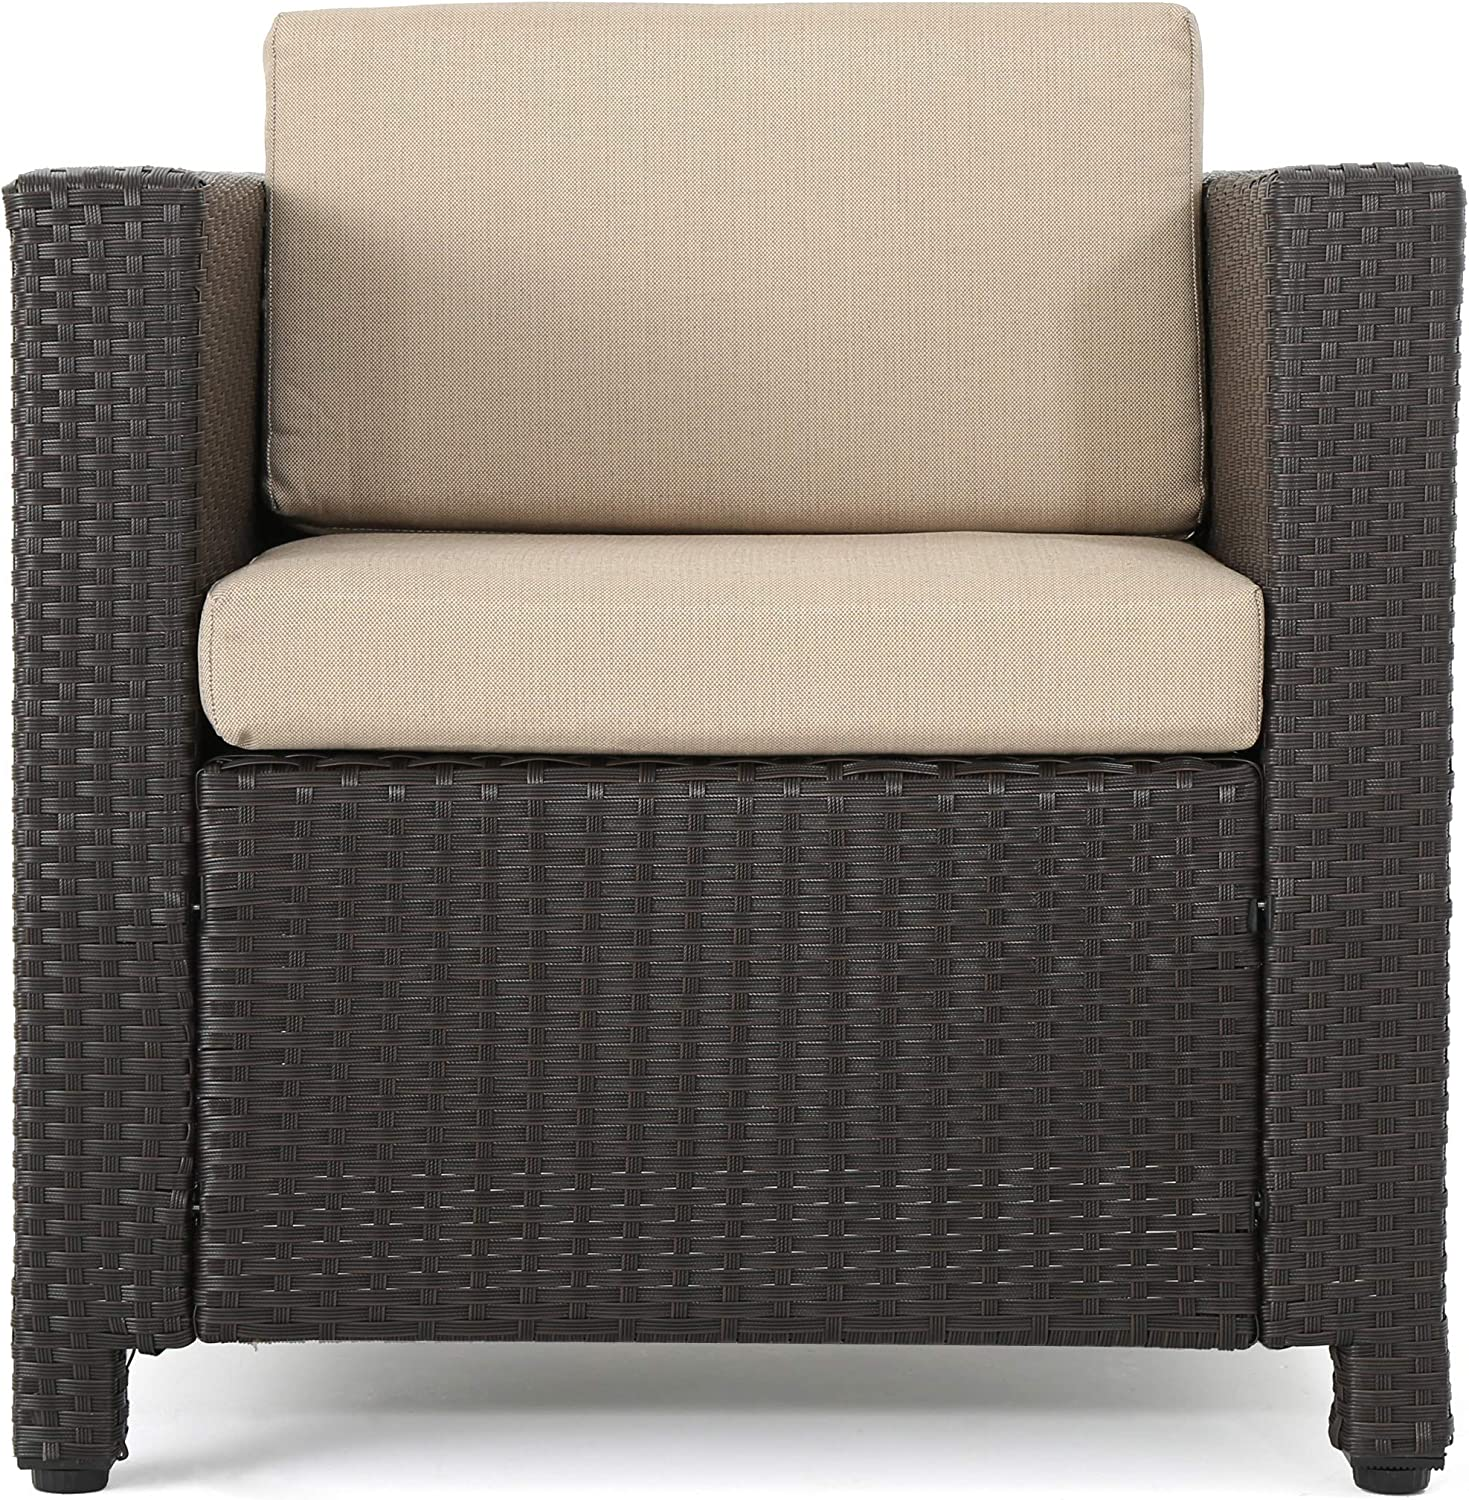 Christopher Knight Home Puerta Outdoor Wicker Club Chair with Water Resistant Cushions, Dark Brown / Beige